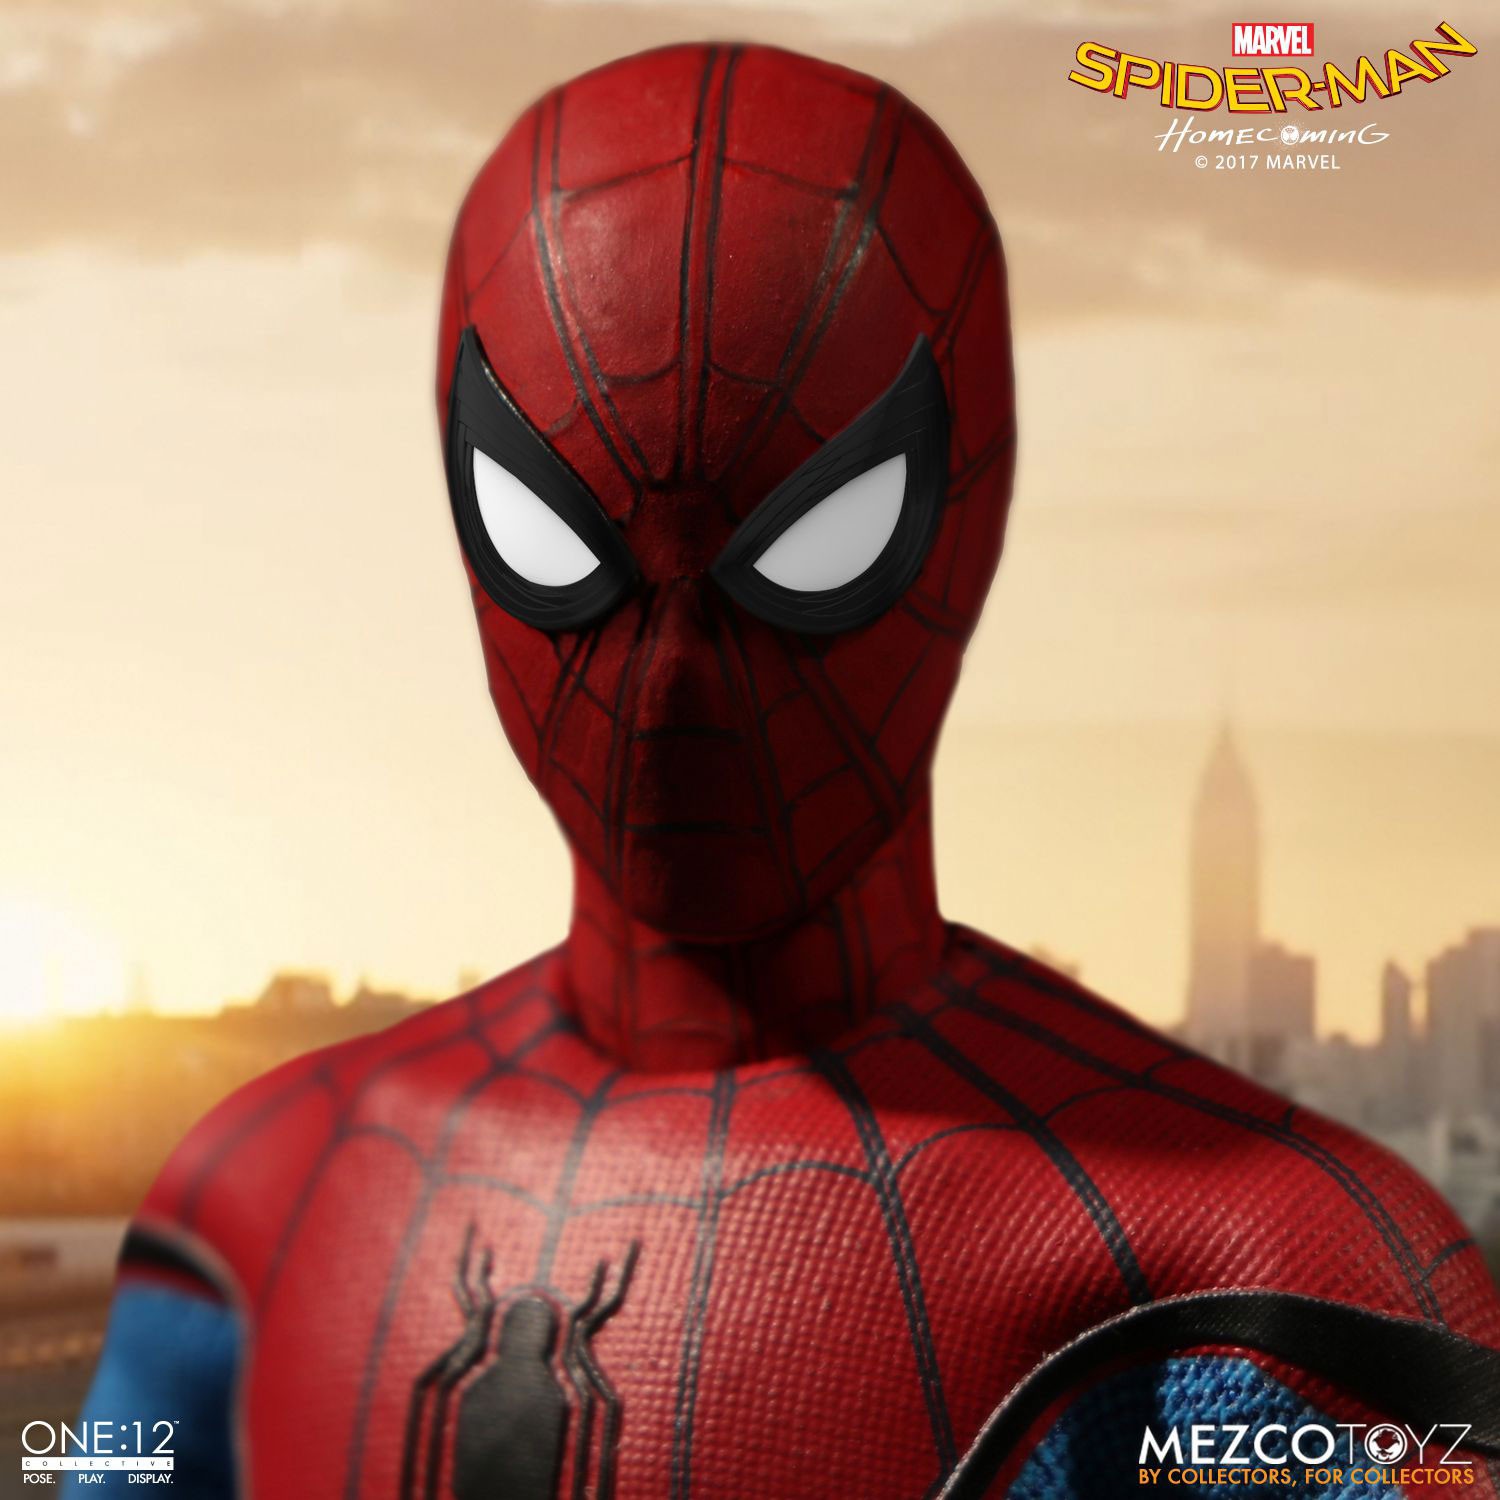 spiderman-homecoming-mezco-one-12-collective-action-figure-5